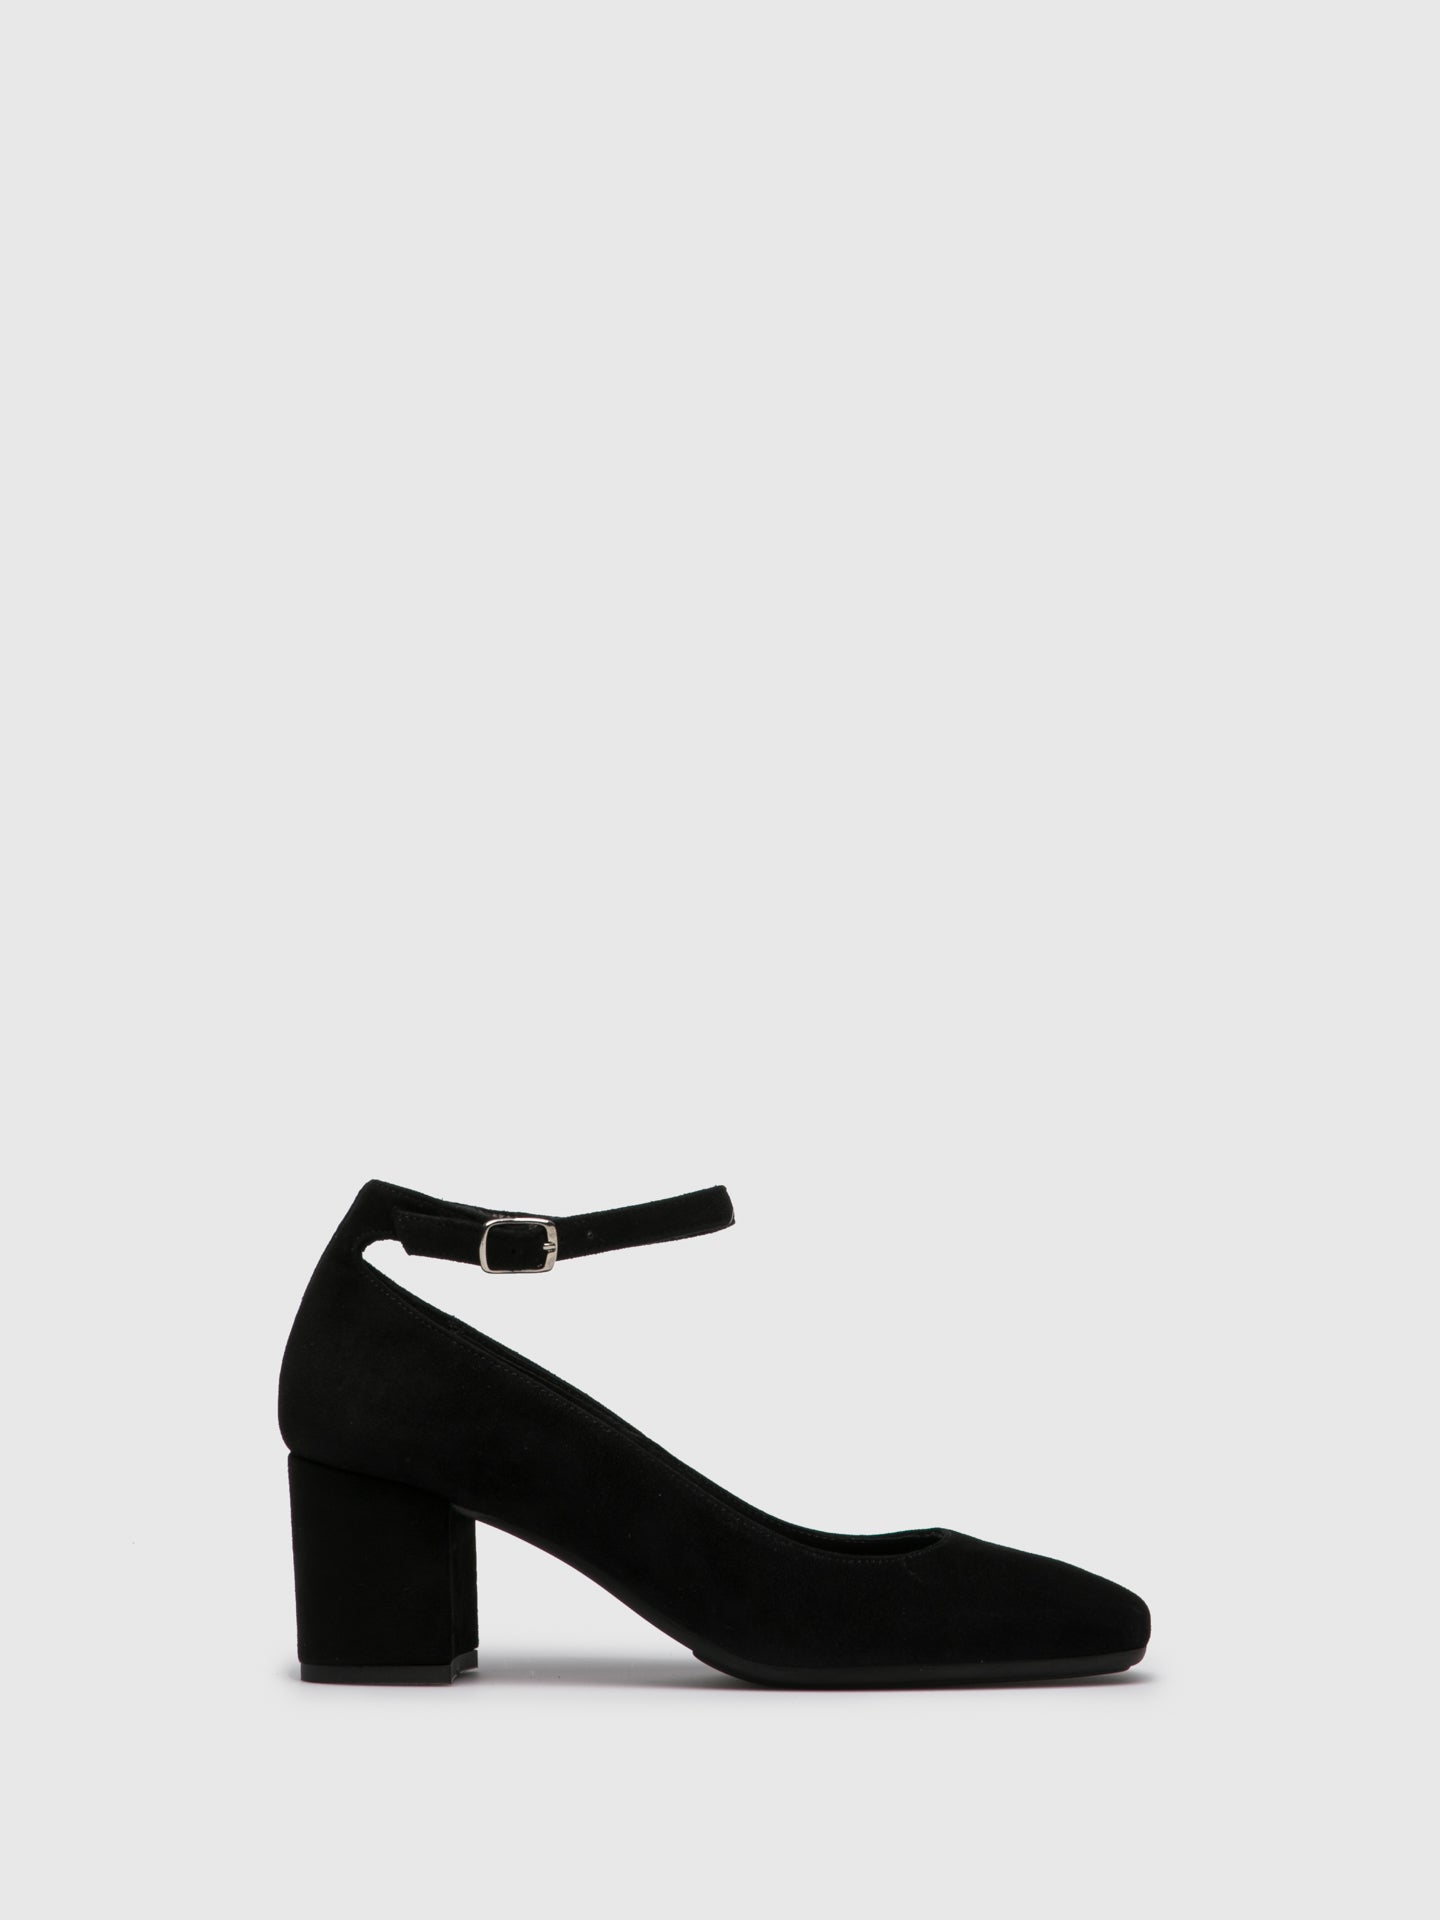 Foreva Black Ankle Strap Shoes